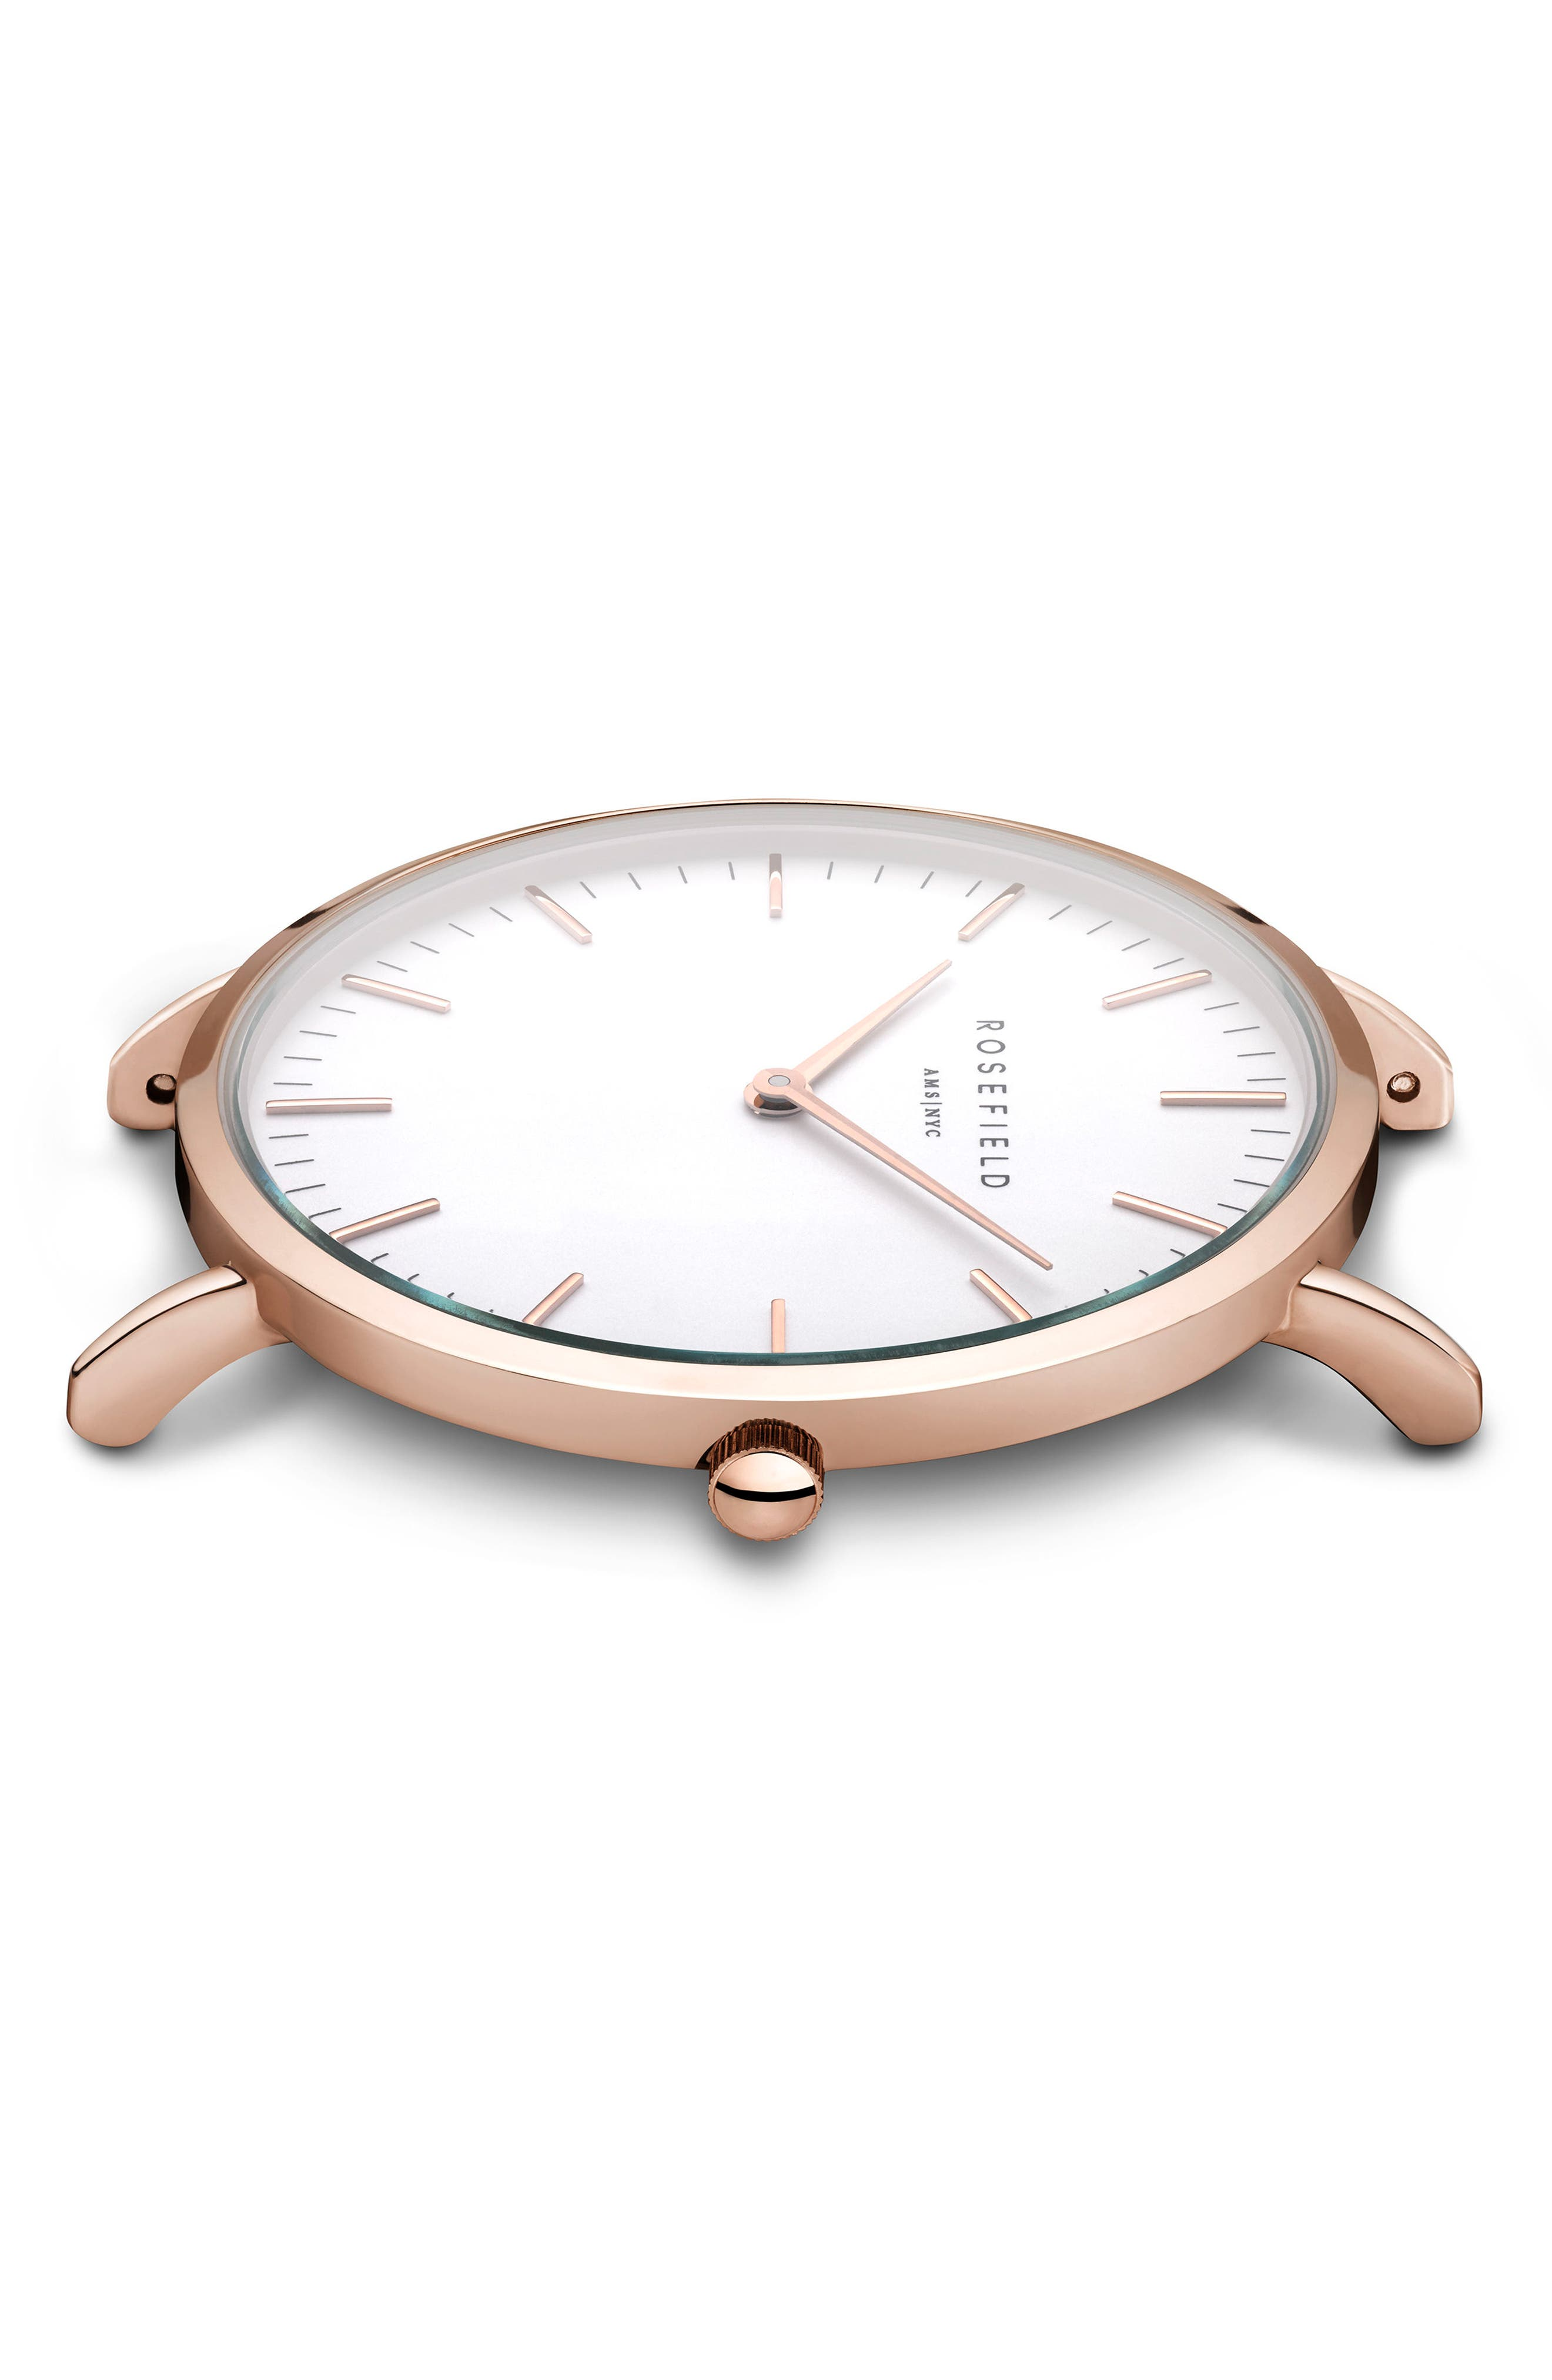 Tribeca Leather Strap Watch, 33mm,                             Alternate thumbnail 3, color,                             PINK/ WHITE/ ROSE GOLD